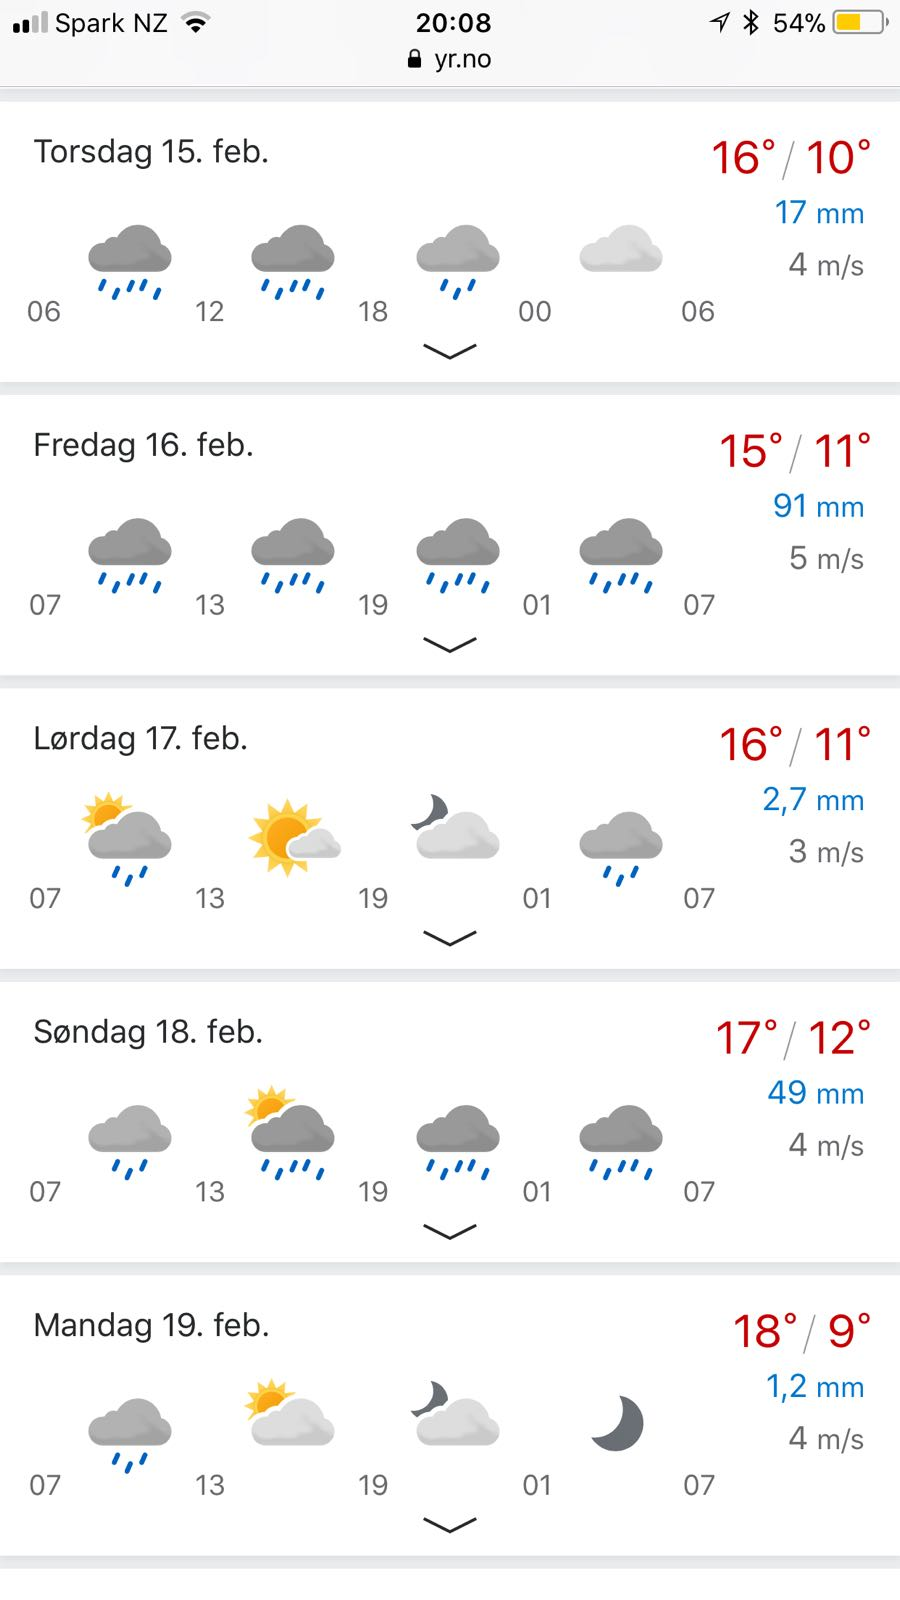 The forecast from my favourite Norwegan weather website (don't ask me why I use them, but they seem to be more accurate than anyone else).